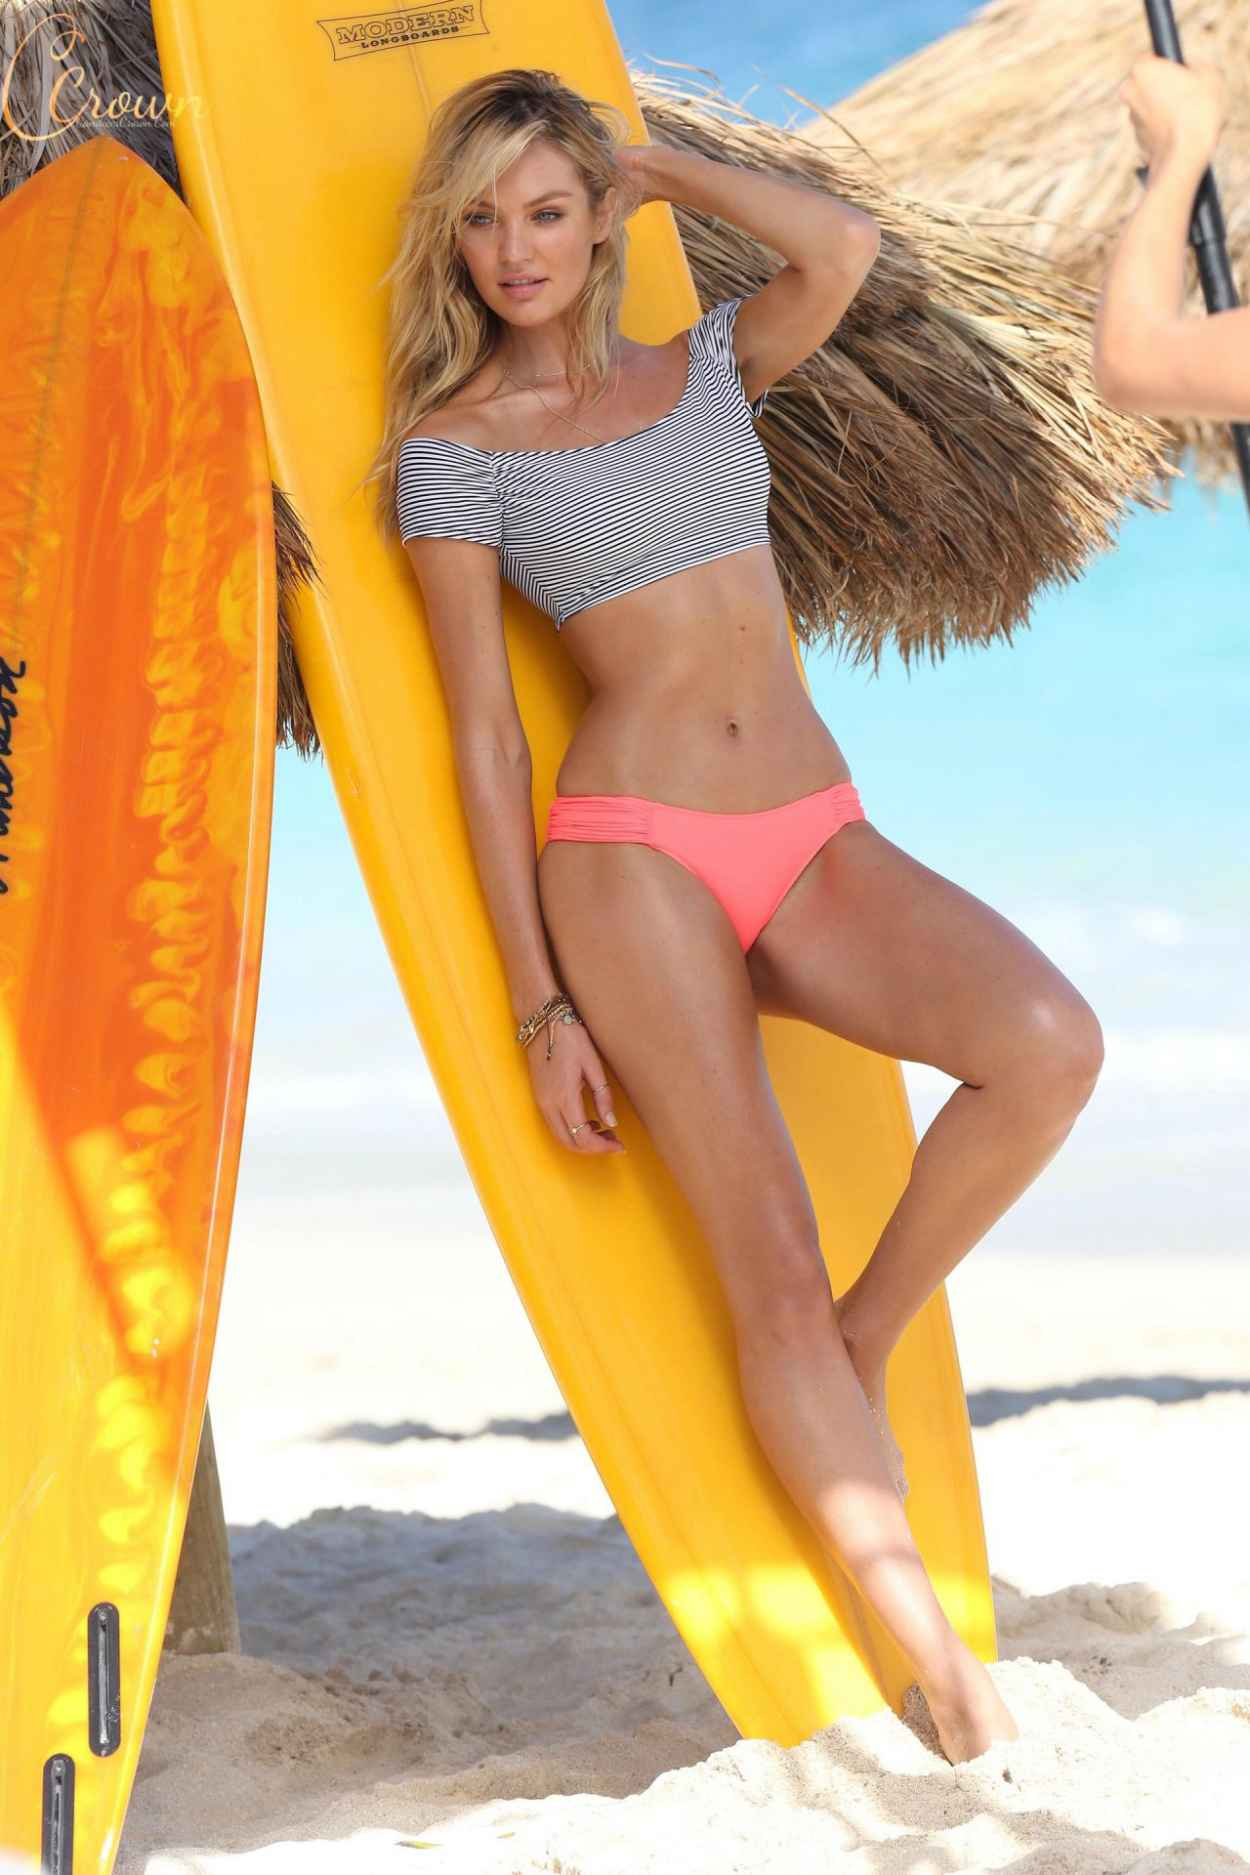 Candice Swanepoel in a Bikini - Victoria Secret Bikini Photoshoot in St. Barts-1